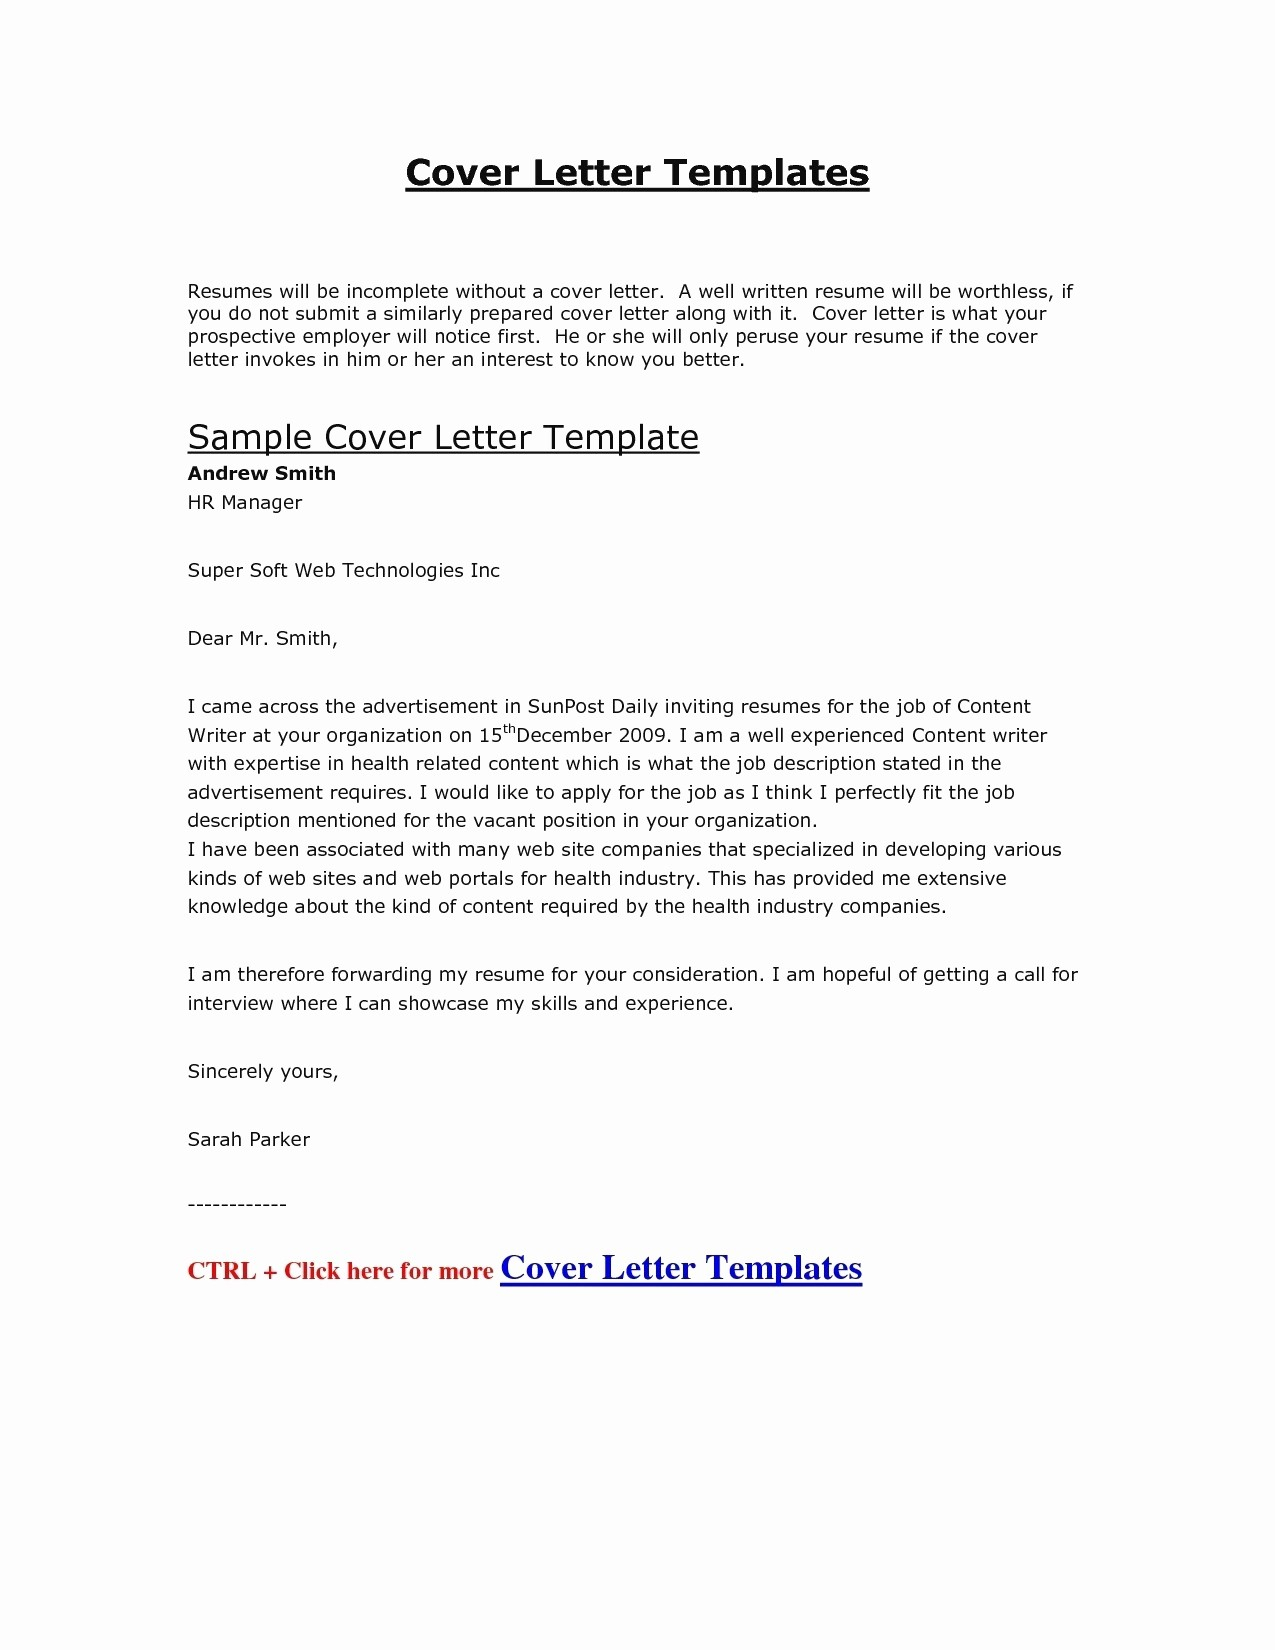 Bad Check Letter Template - Job Application Letter format Template Copy Cover Letter Template Hr